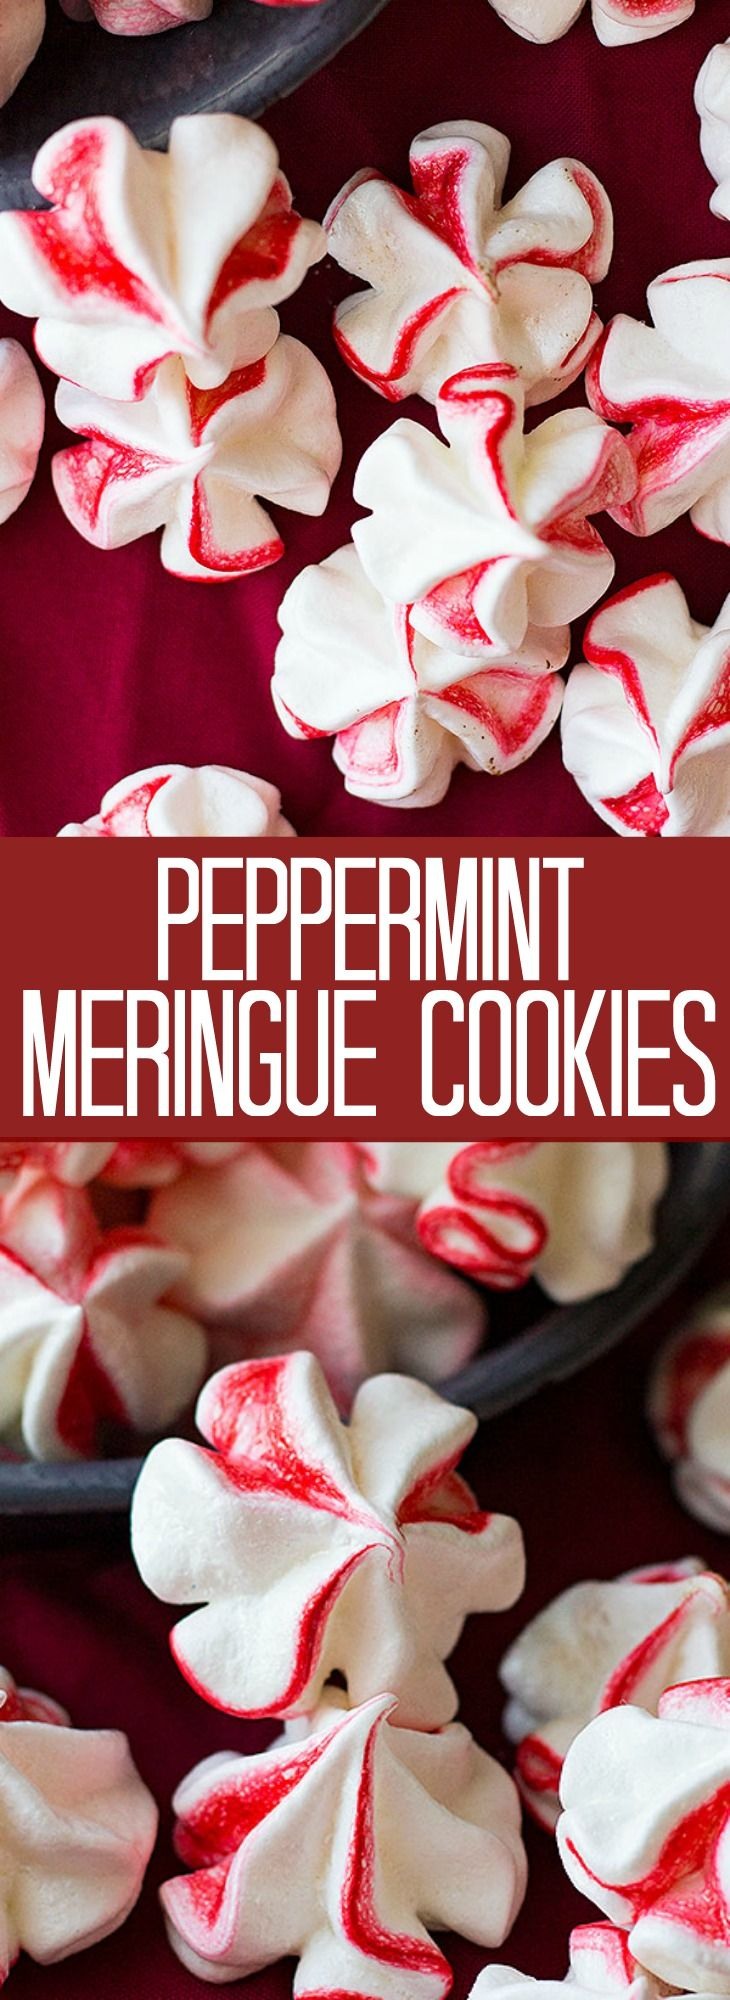 These classic Peppermint Meringue Cookies are perfect for your Christmas cookie tray! They are light and airy and easy to make.